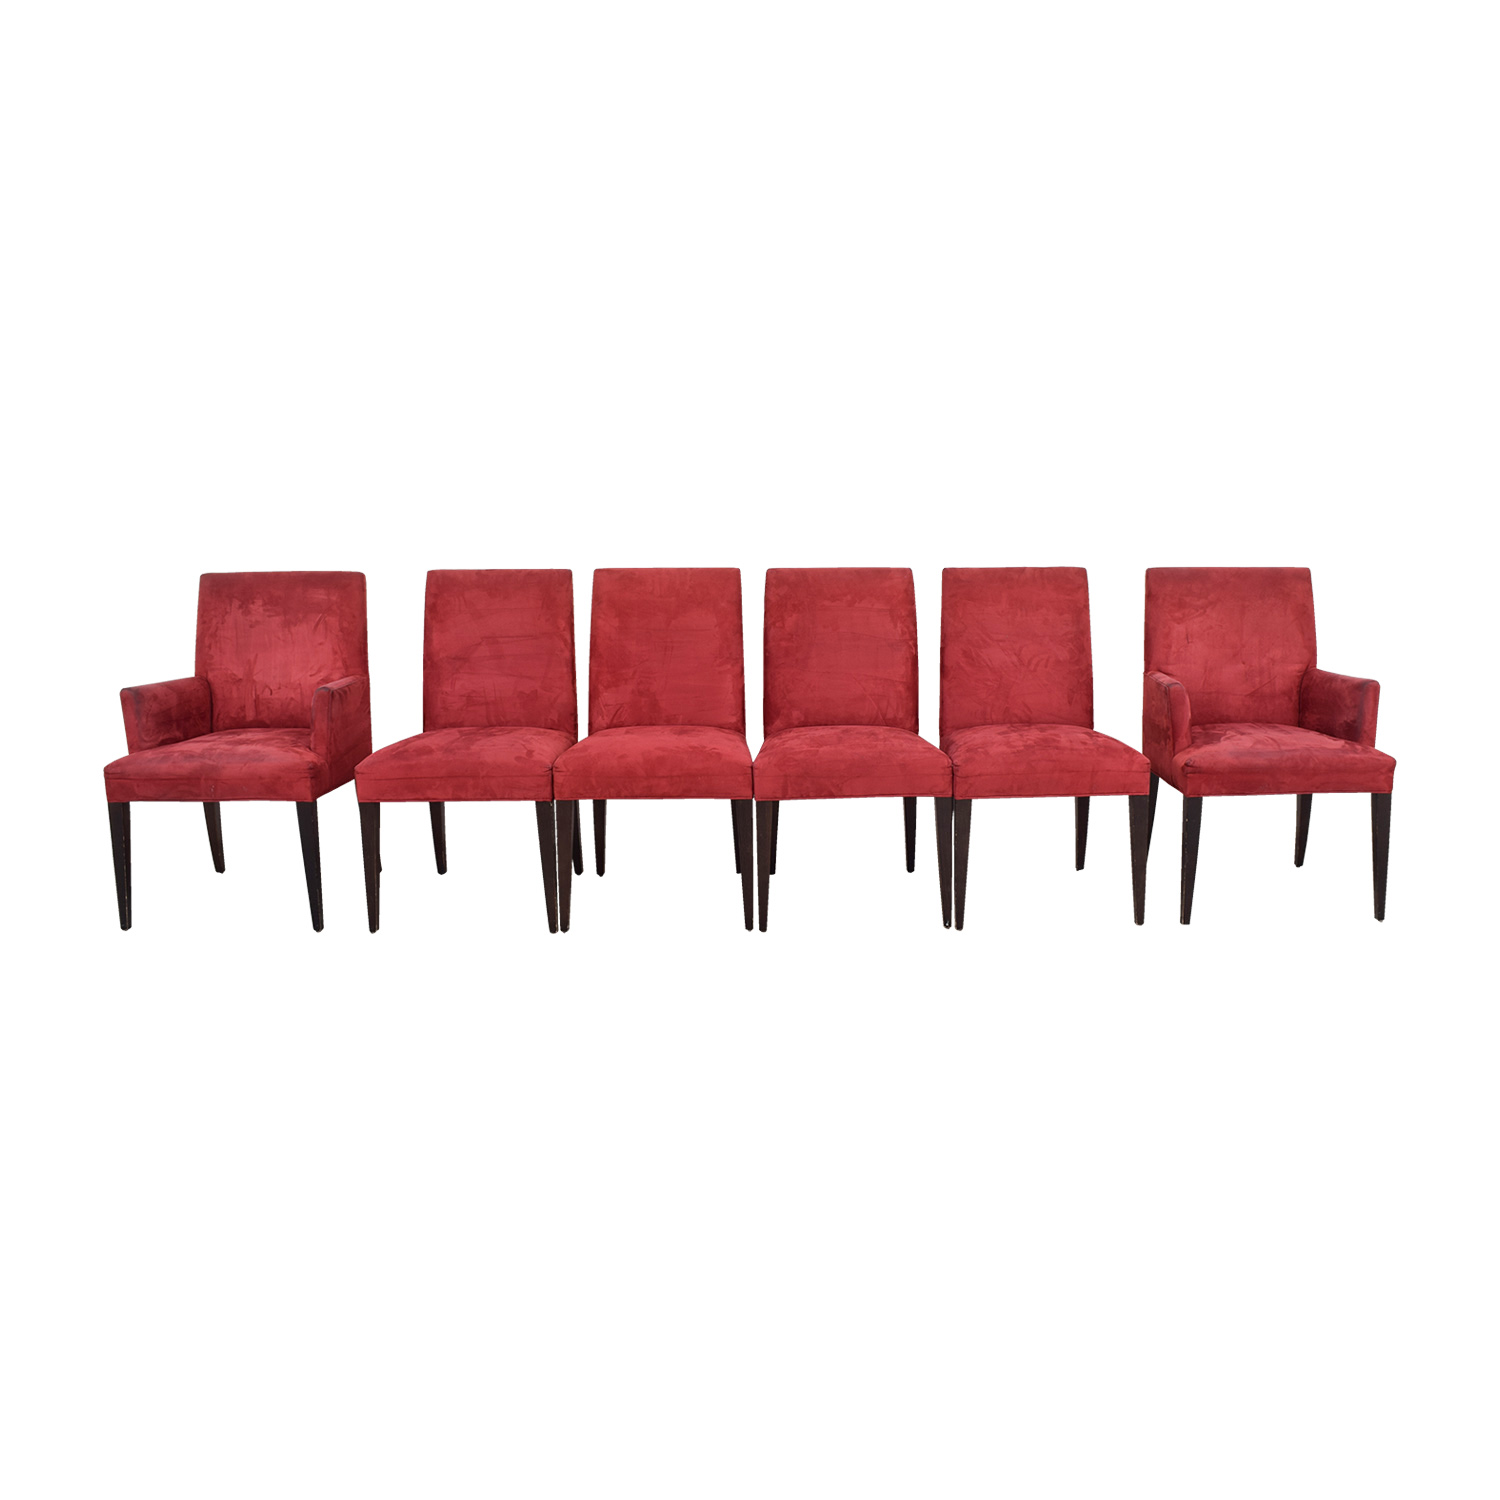 Crate & Barrel Microsuede Cranberry Chairs / Sofas